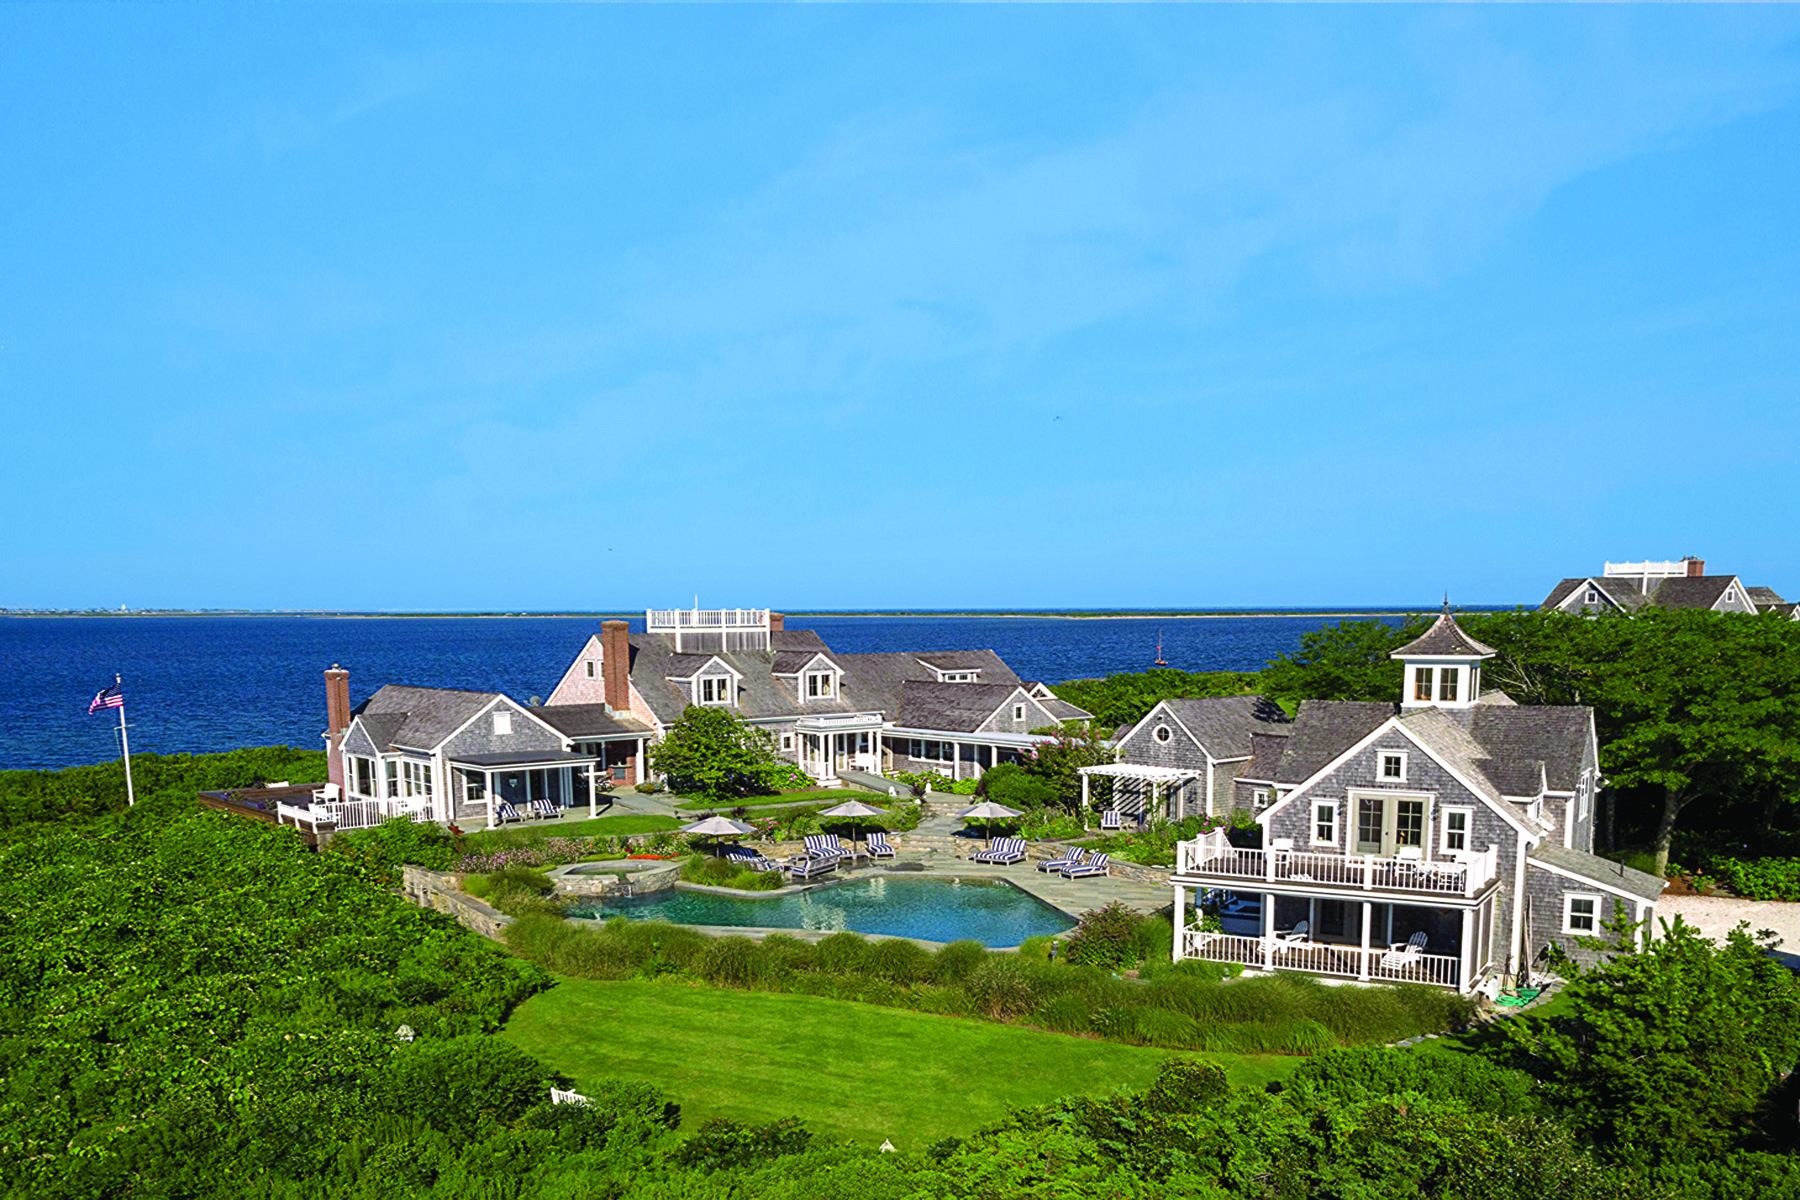 Vivienda unifamiliar por un Venta en Entirely Unique Waterfront Estate 72 Pocomo Road 76 and 78 Pocomo Road, Nantucket, Massachusetts, 02554 Estados Unidos